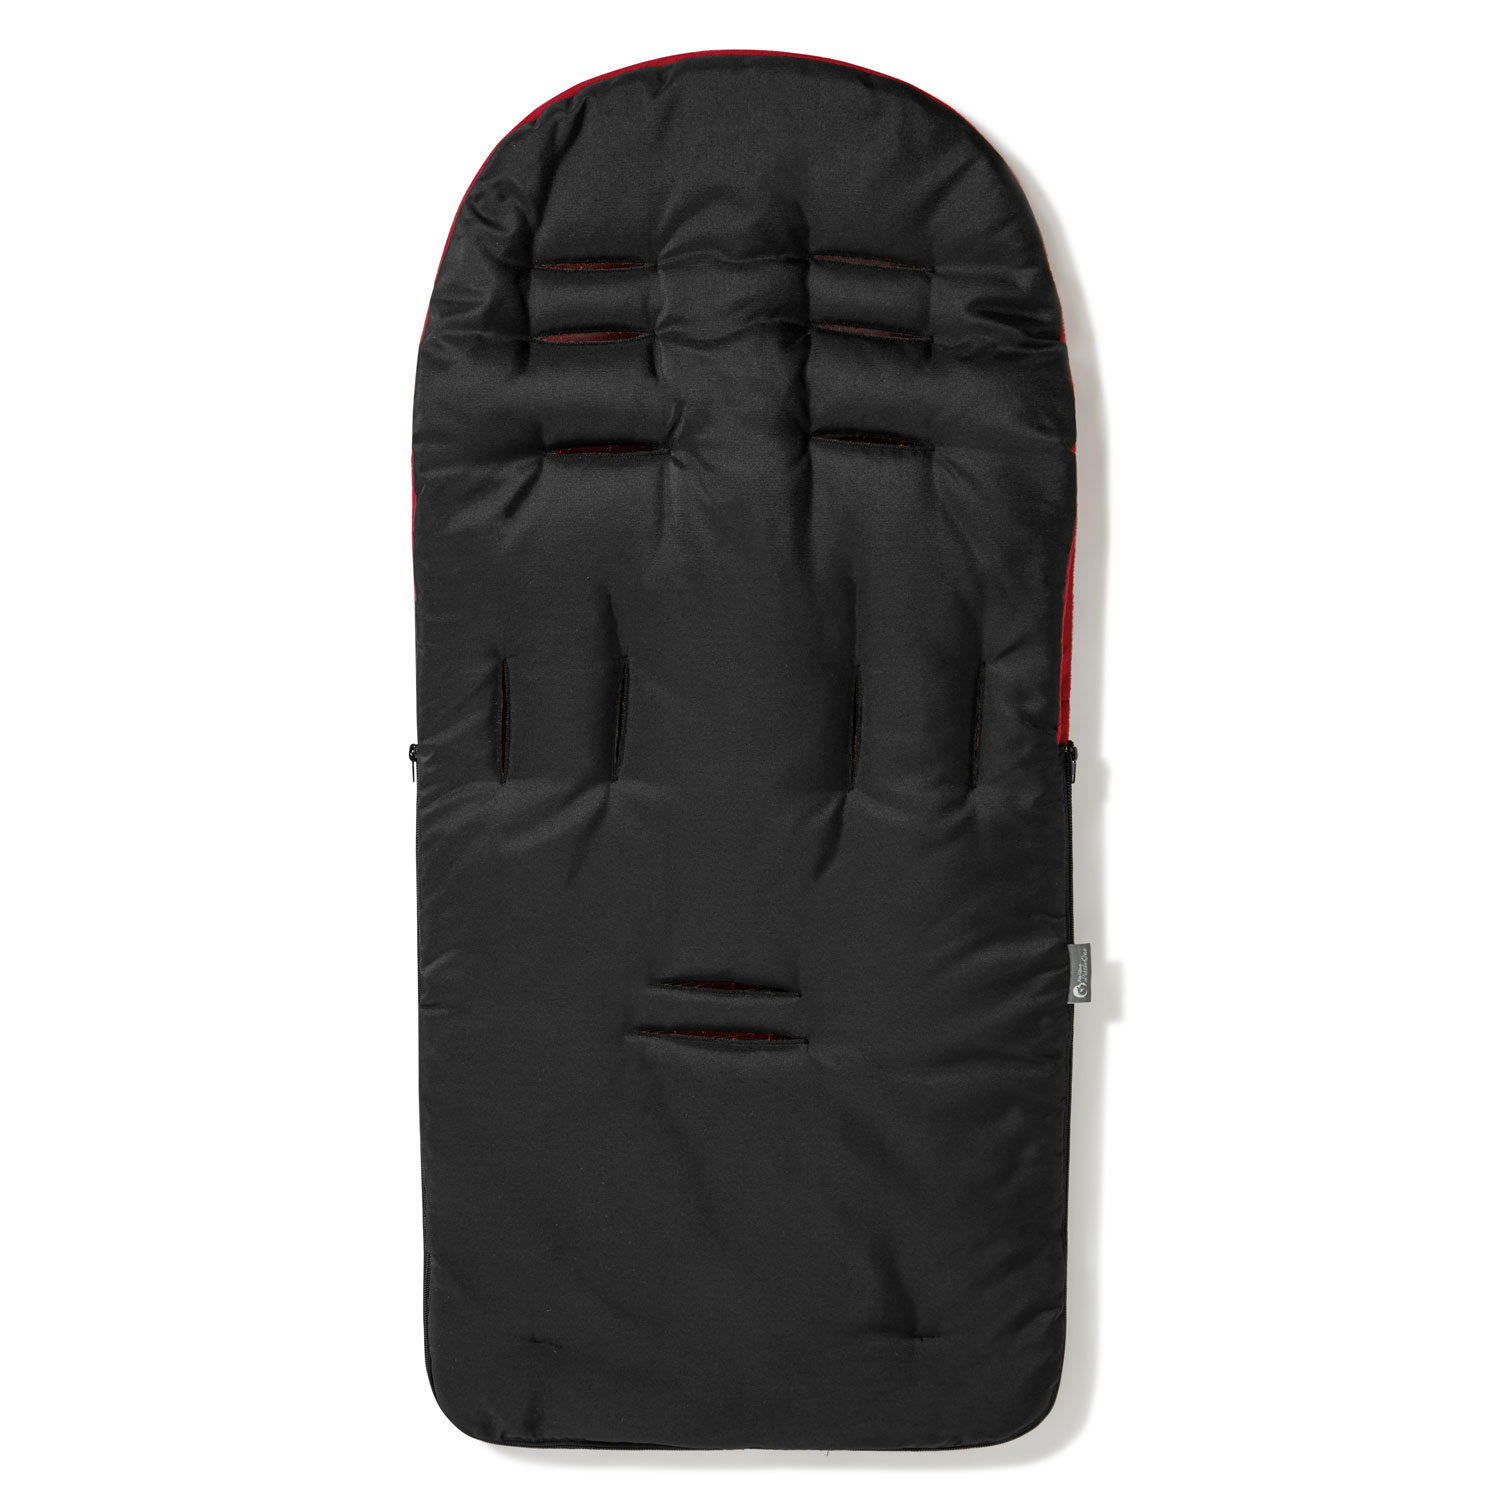 Footmuff-For-Cosatto-Yo-Supa-Chacha-To-amp-Fro-Cosy-Toes-Liner-Pushchair thumbnail 6